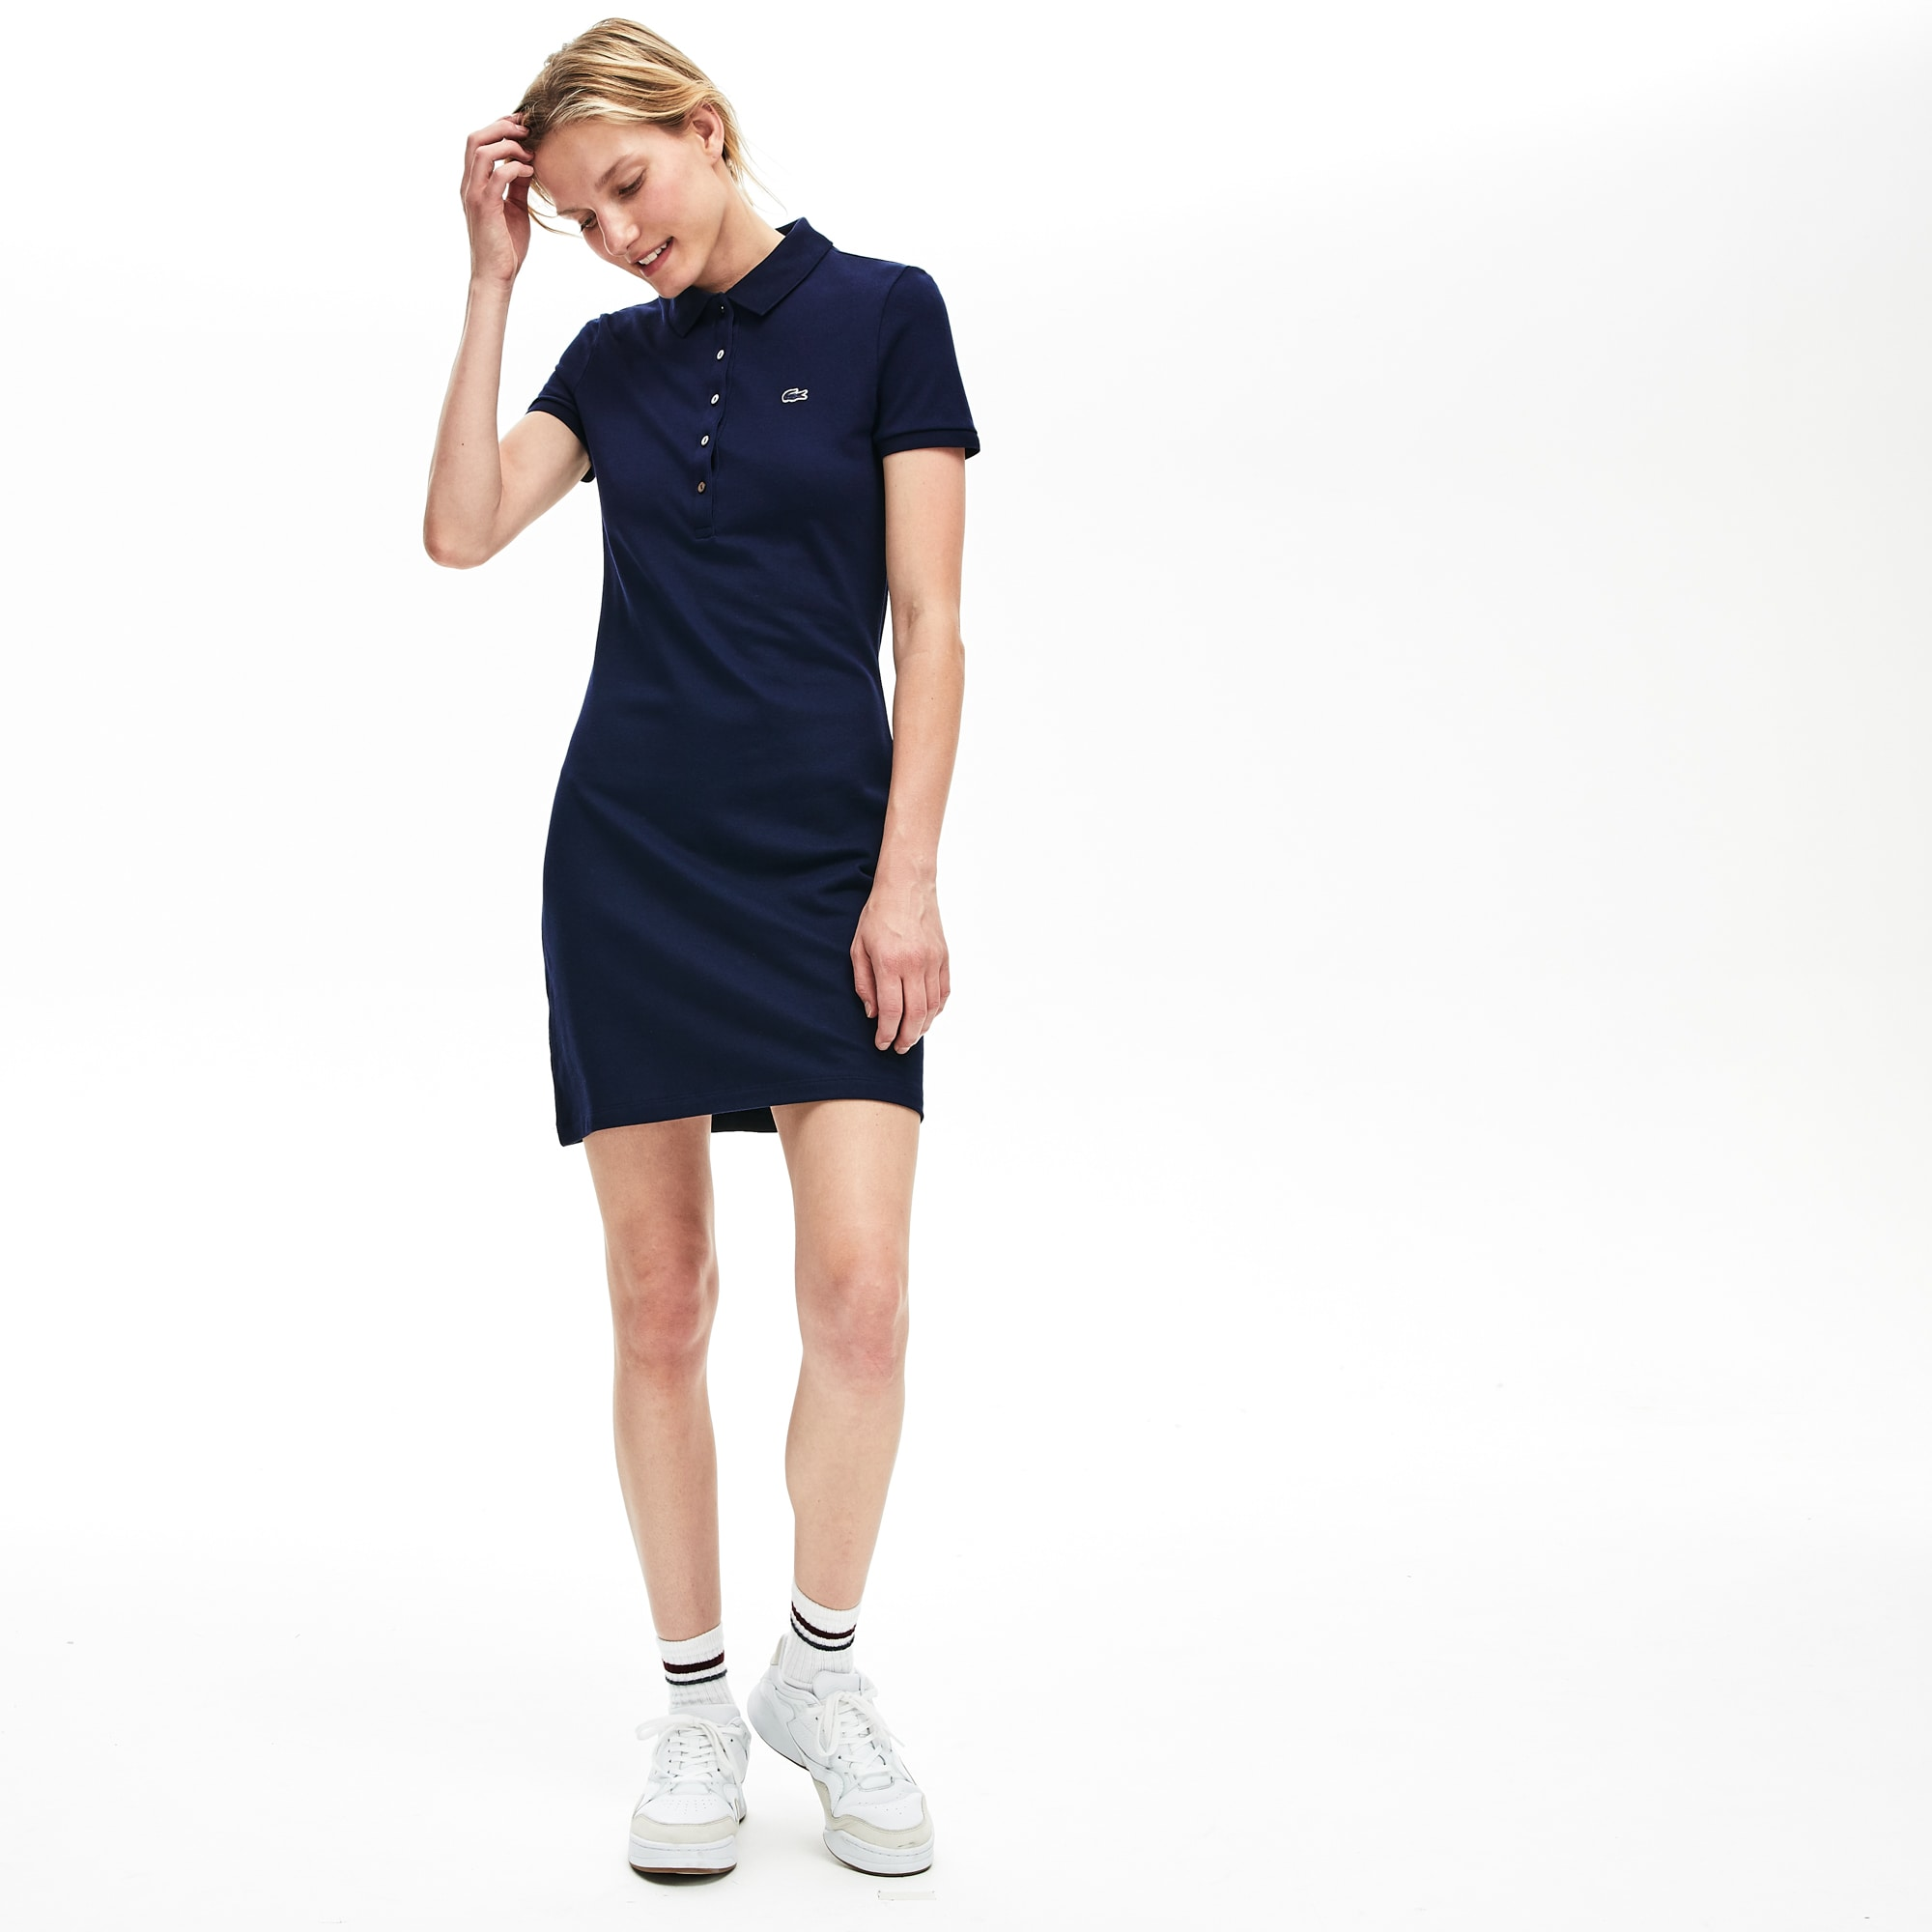 d61dbff67acf Dresses & Skirts | Women's Fashion | LACOSTE